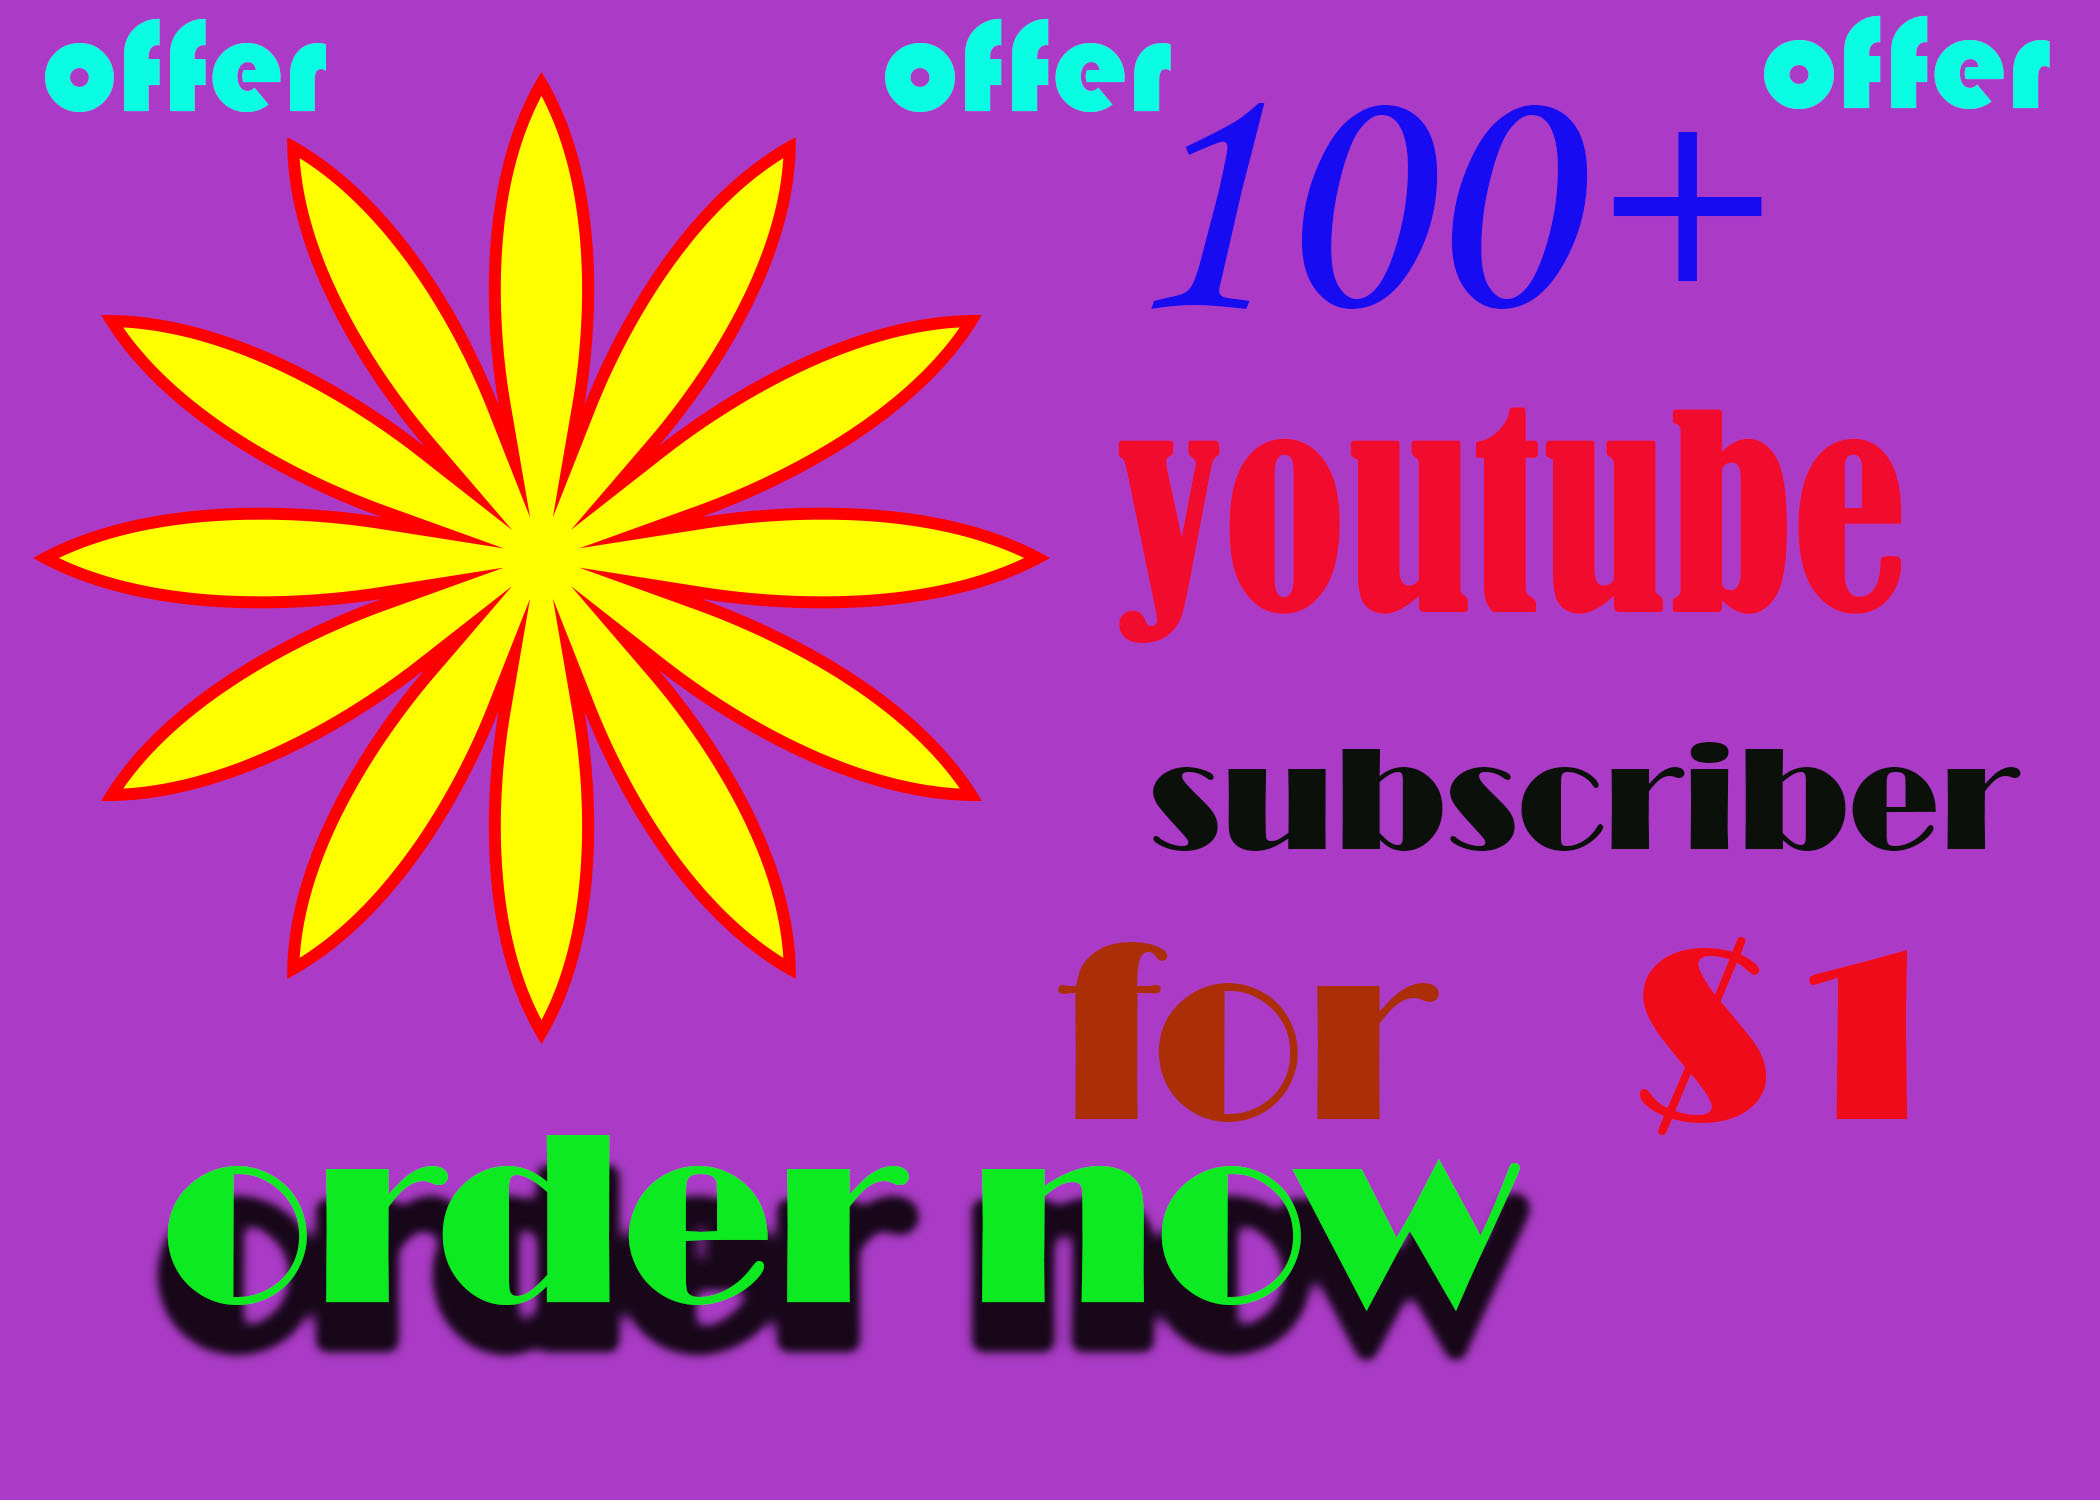 Exclusive offer 200+ subscriber on your channel completed within 1 day